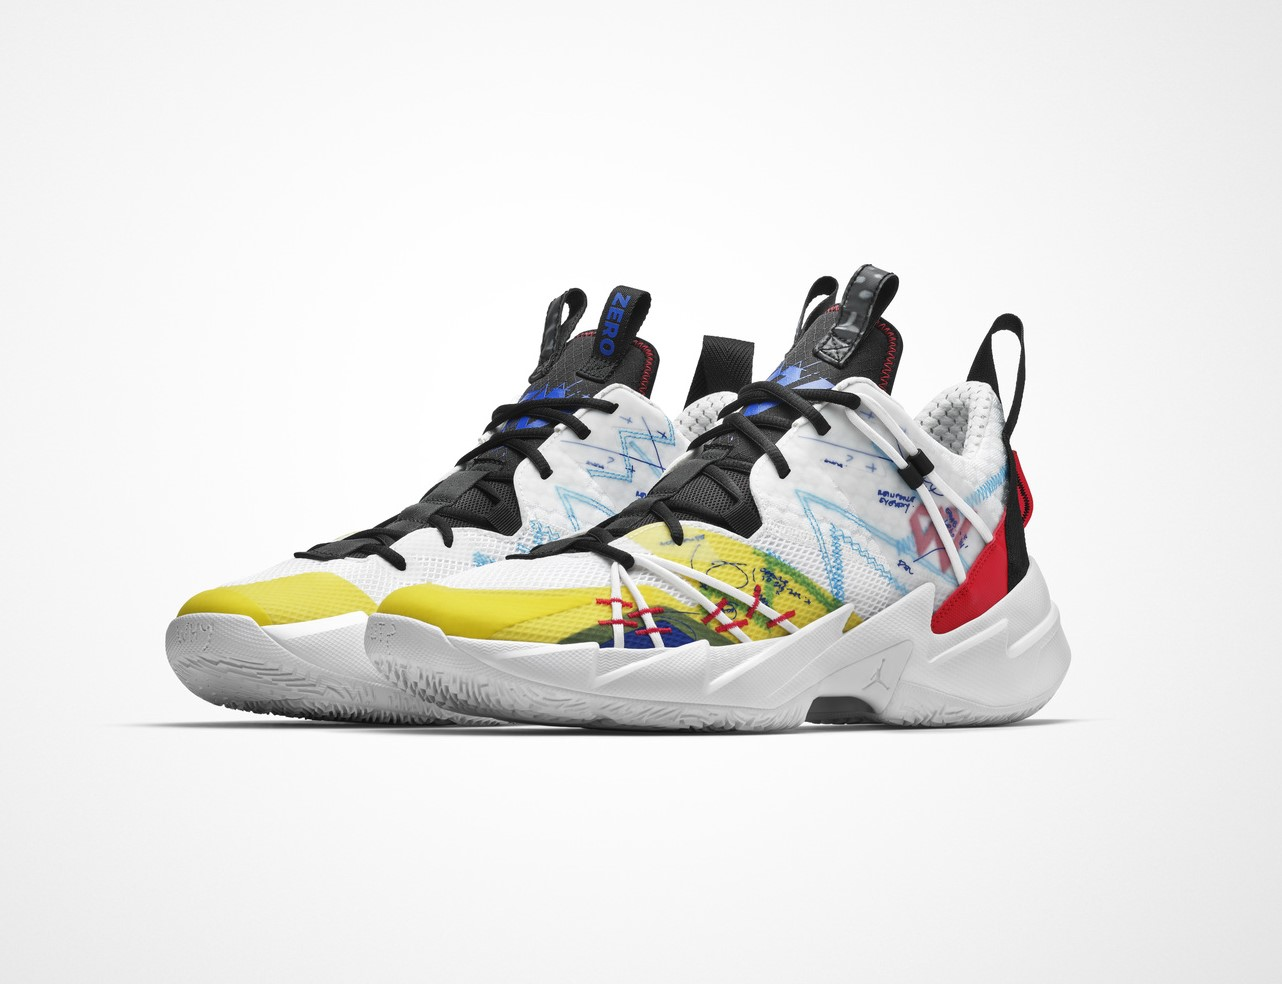 Jordan Why Not? Zer0.3 SE Primary Colors [1]